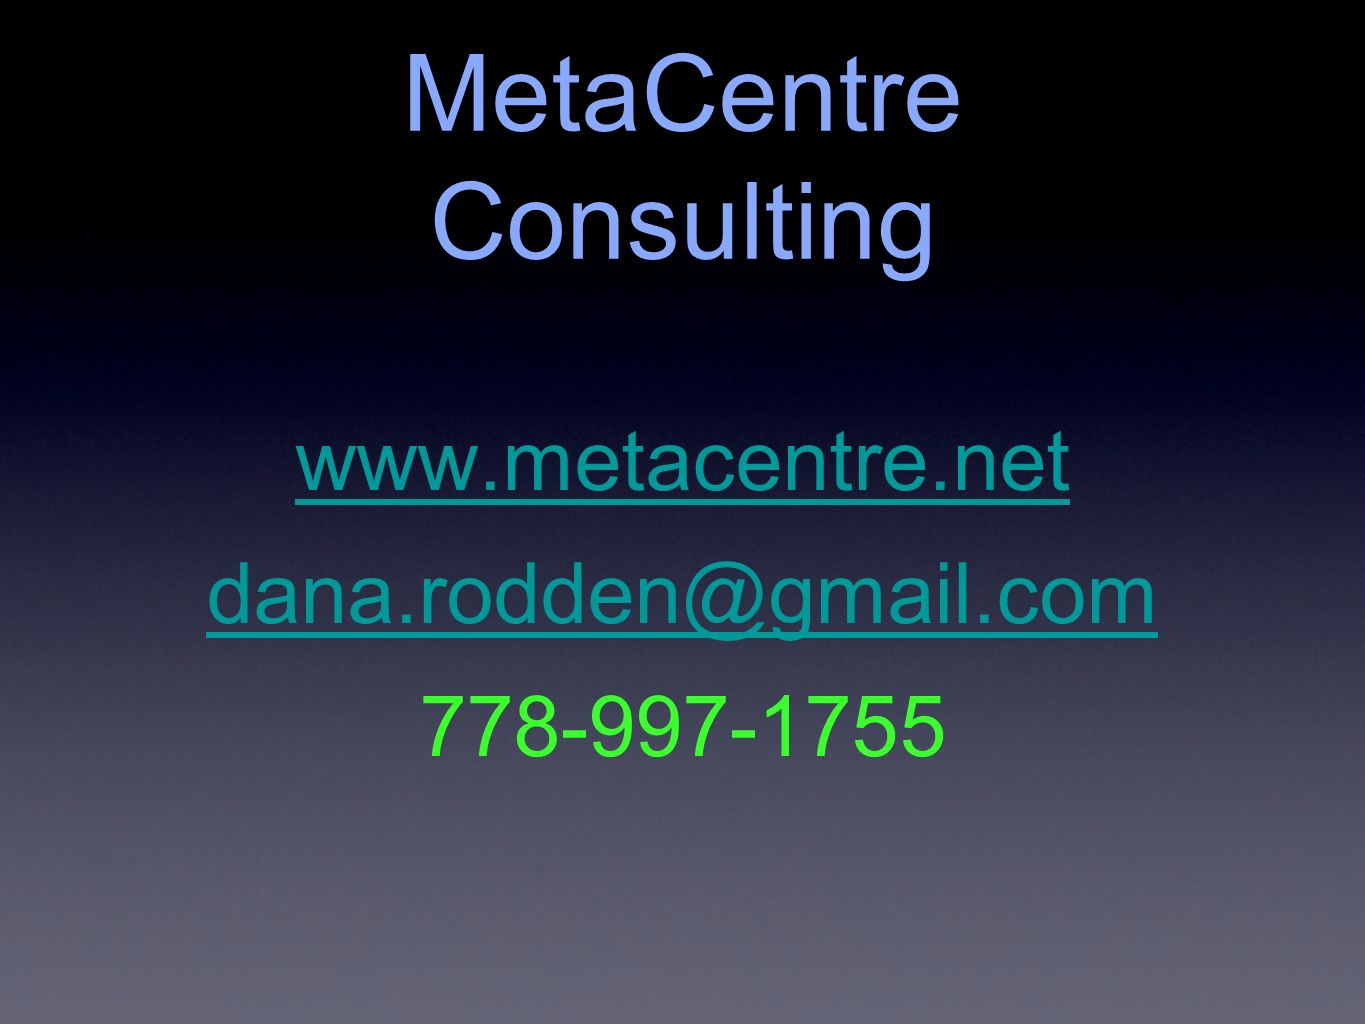 MetaCentre Consulting